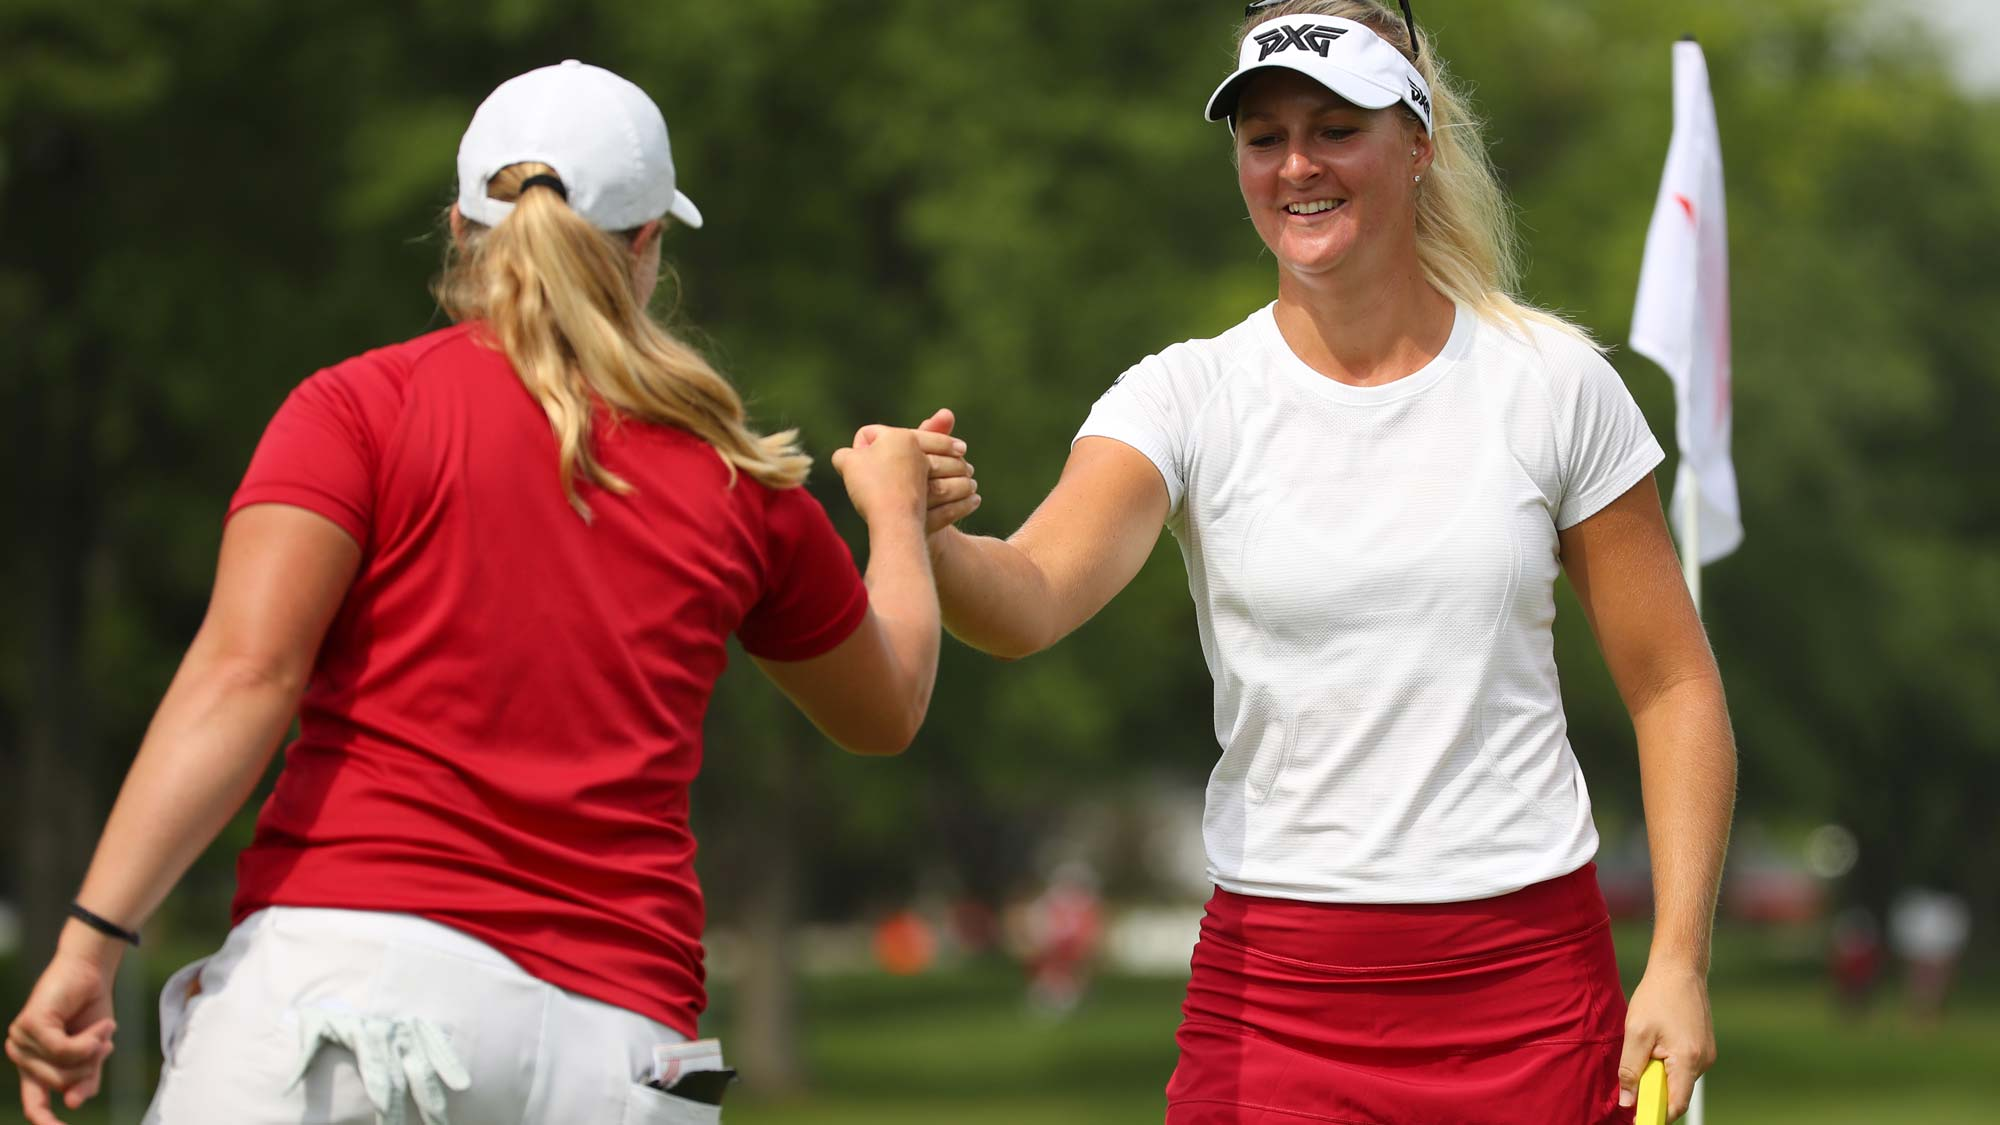 Teammates Anna Nordqvist (R) and Caroline Hedwall of Sweden celebrate Nordqvist's birdie on the first hole during round two of the Dow Great Lakes Bay Invitational